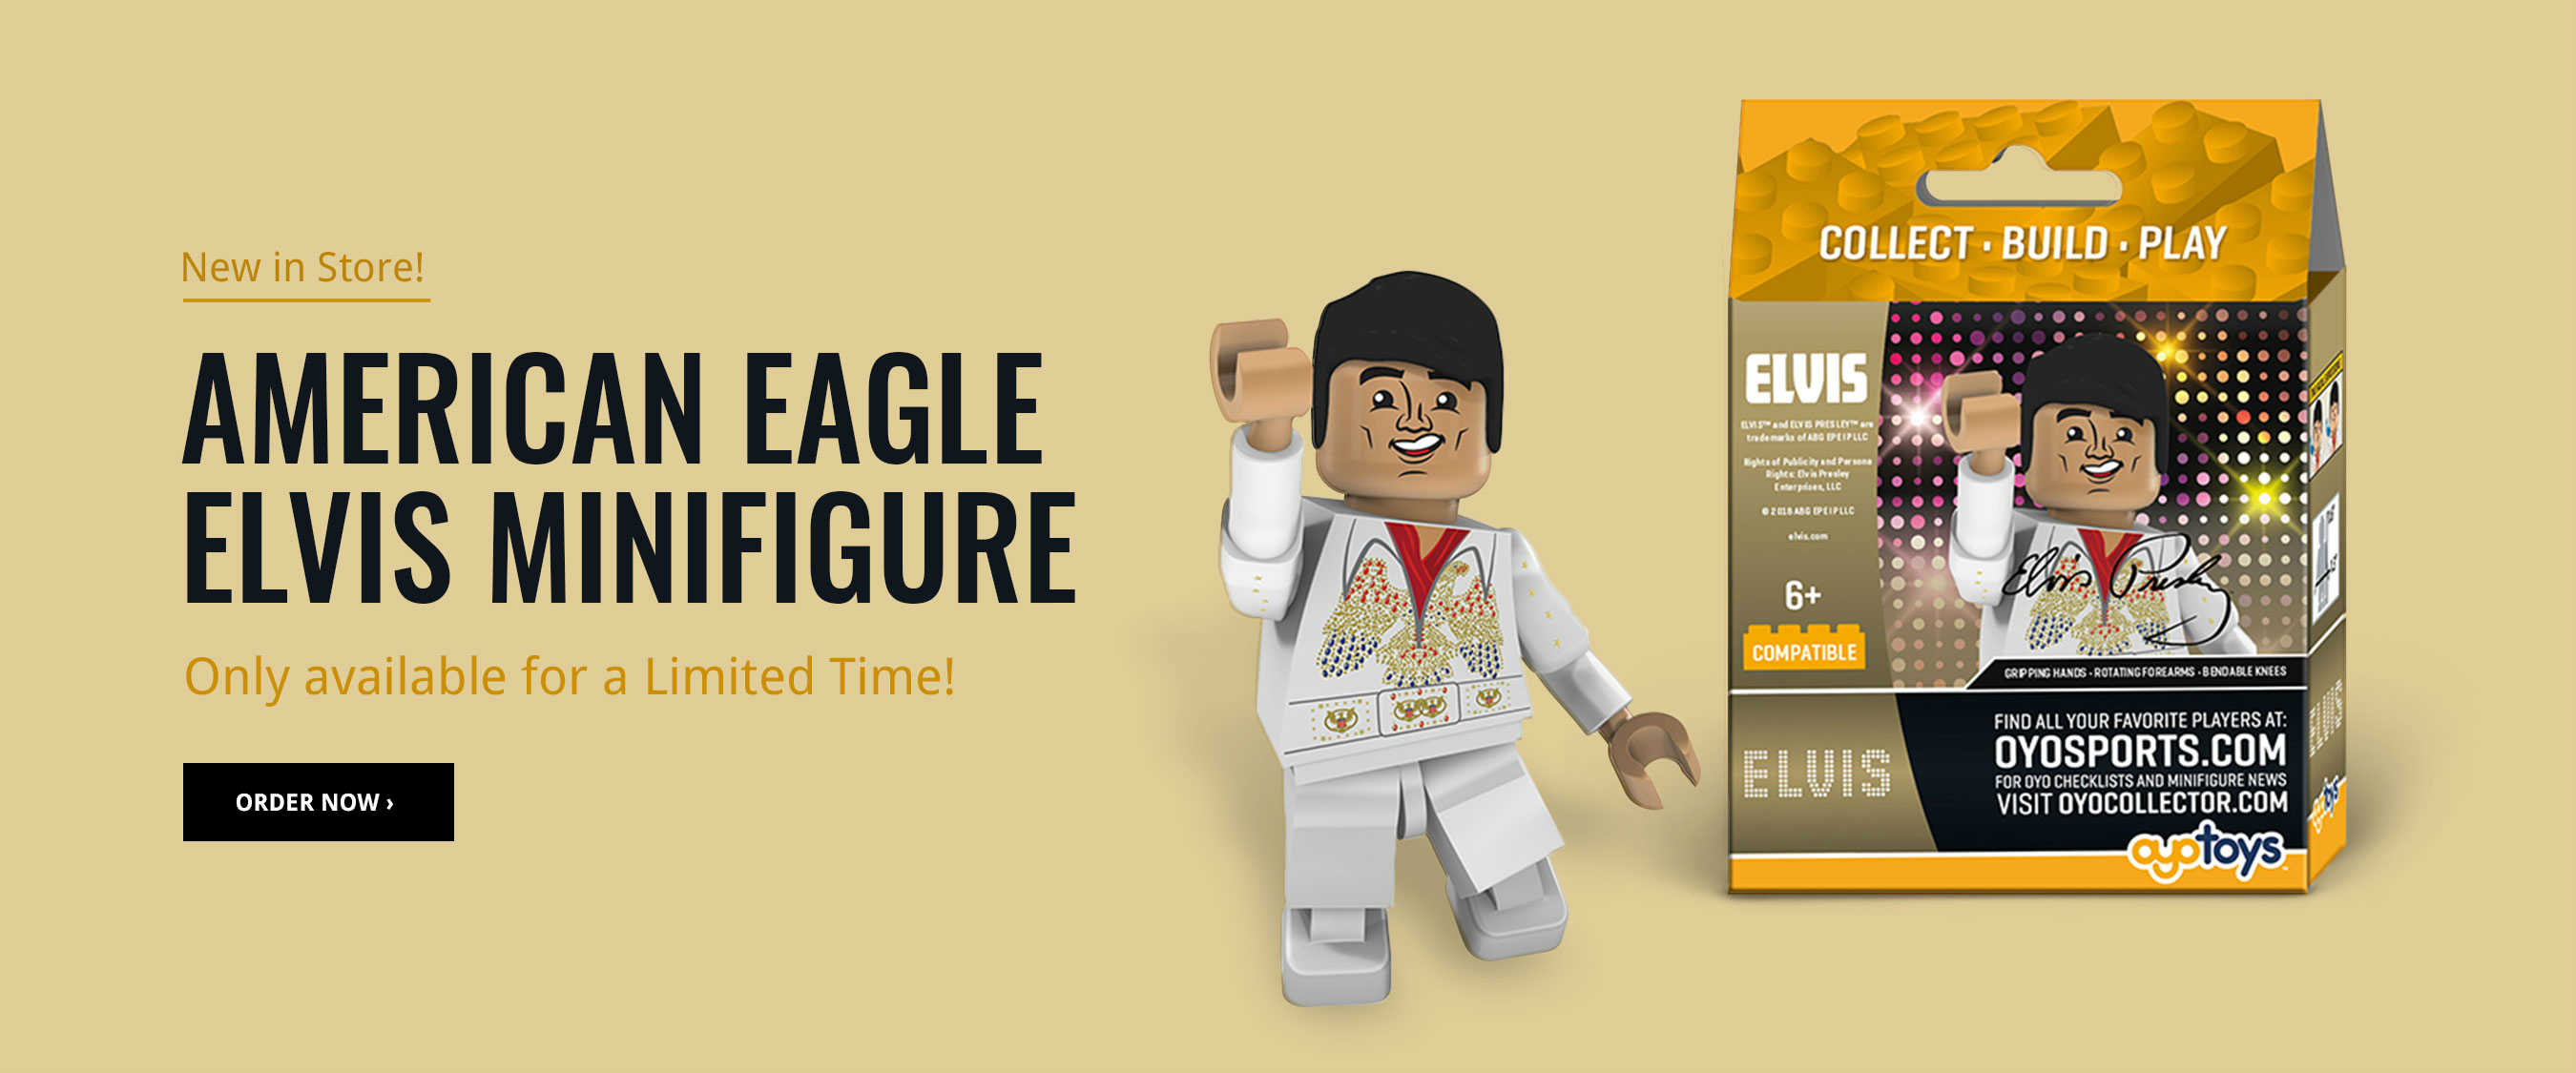 Order the Exclusive American Eagle Minifigure!